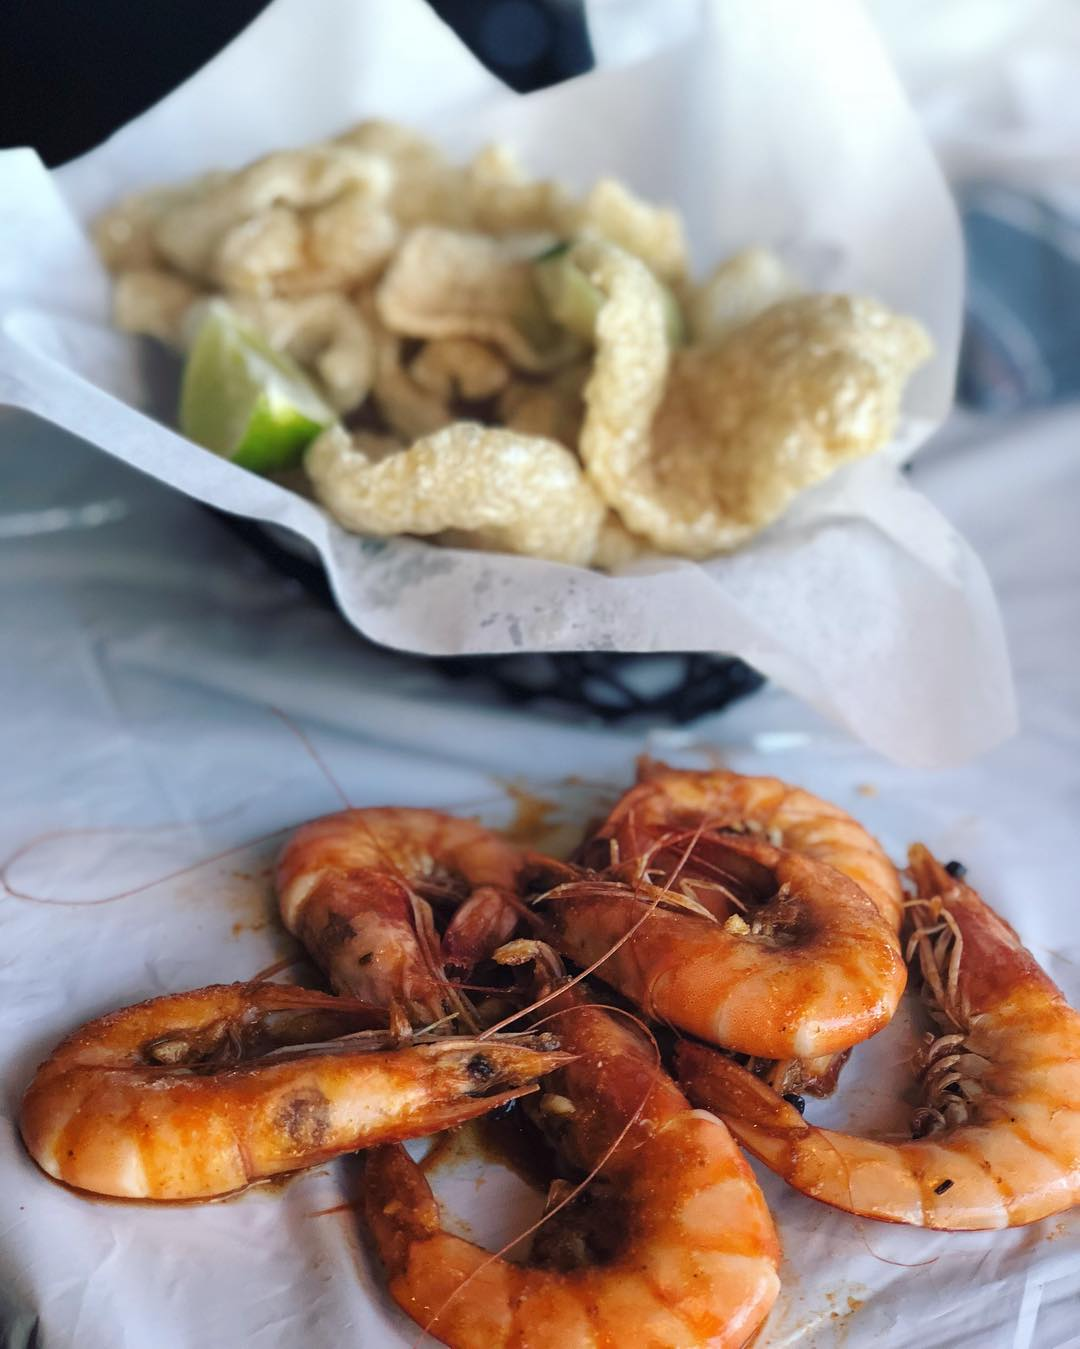 So we have this super fun restaurant in Vegas called @HotNjuicyLv and going there for lunch or dinner is TOTALLY KETO! I had a pound of steamed shrimp covered in butter and spices as well as FRESH MADE pork cracklin's! NOTE: you eat with your hands so prepare to get messy! OTHER NOTE: dip the cracklin's in your butter for extra flavor